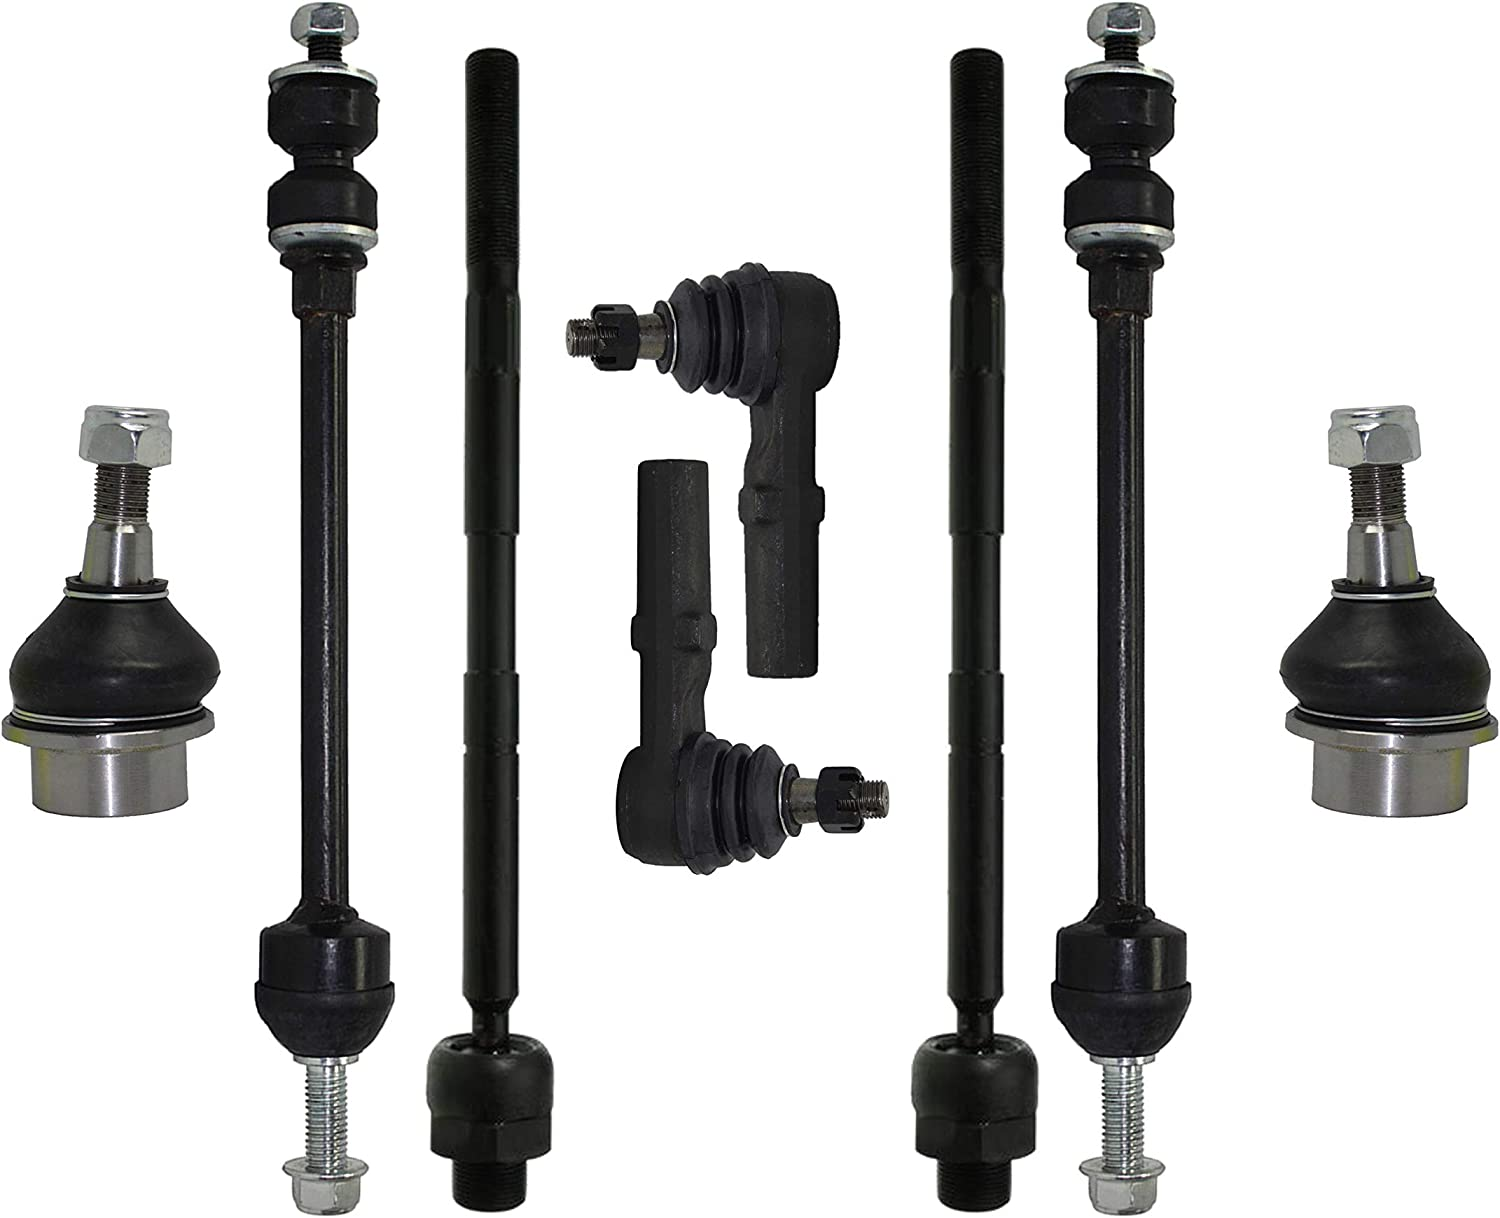 PartsW 2 Pc New Suspension Kit for Dodge Ram 1500 2002-2005 Front Sway Bar End Links 4WD Models Only